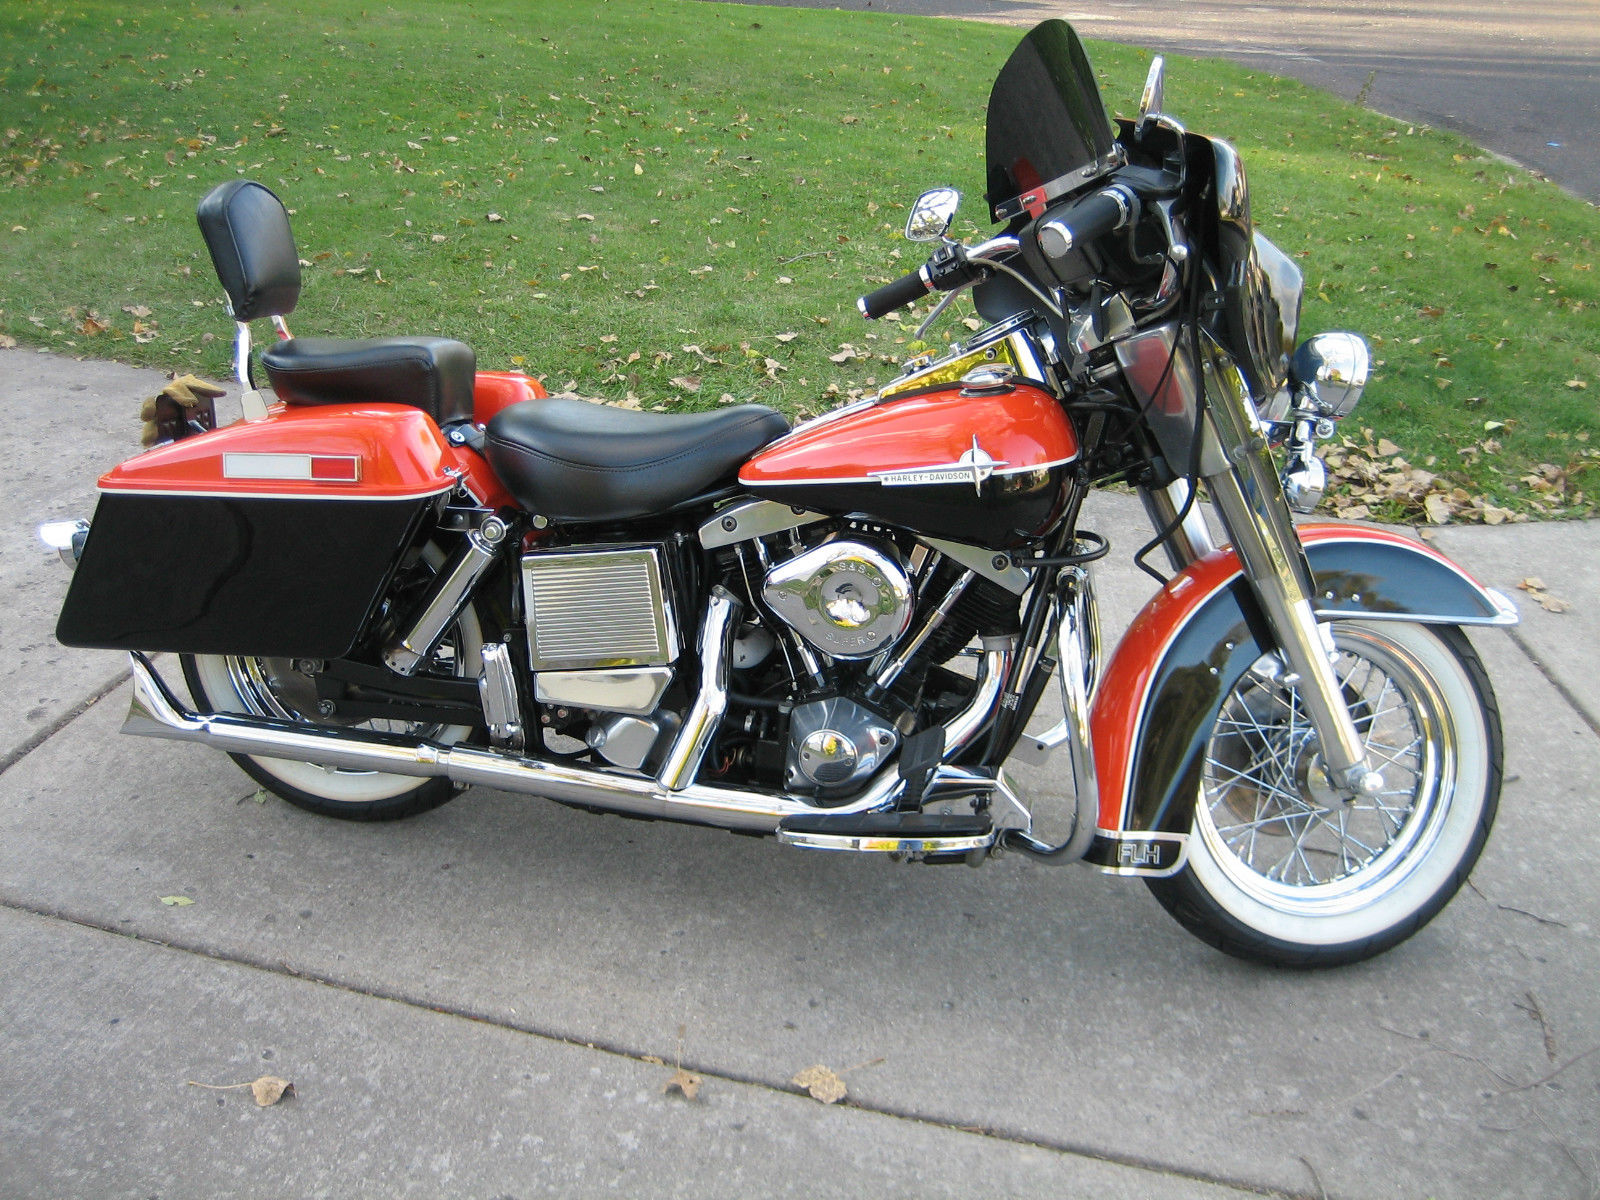 Harley-Davidson FLHC Electra Glide Classic 1979 images #83585